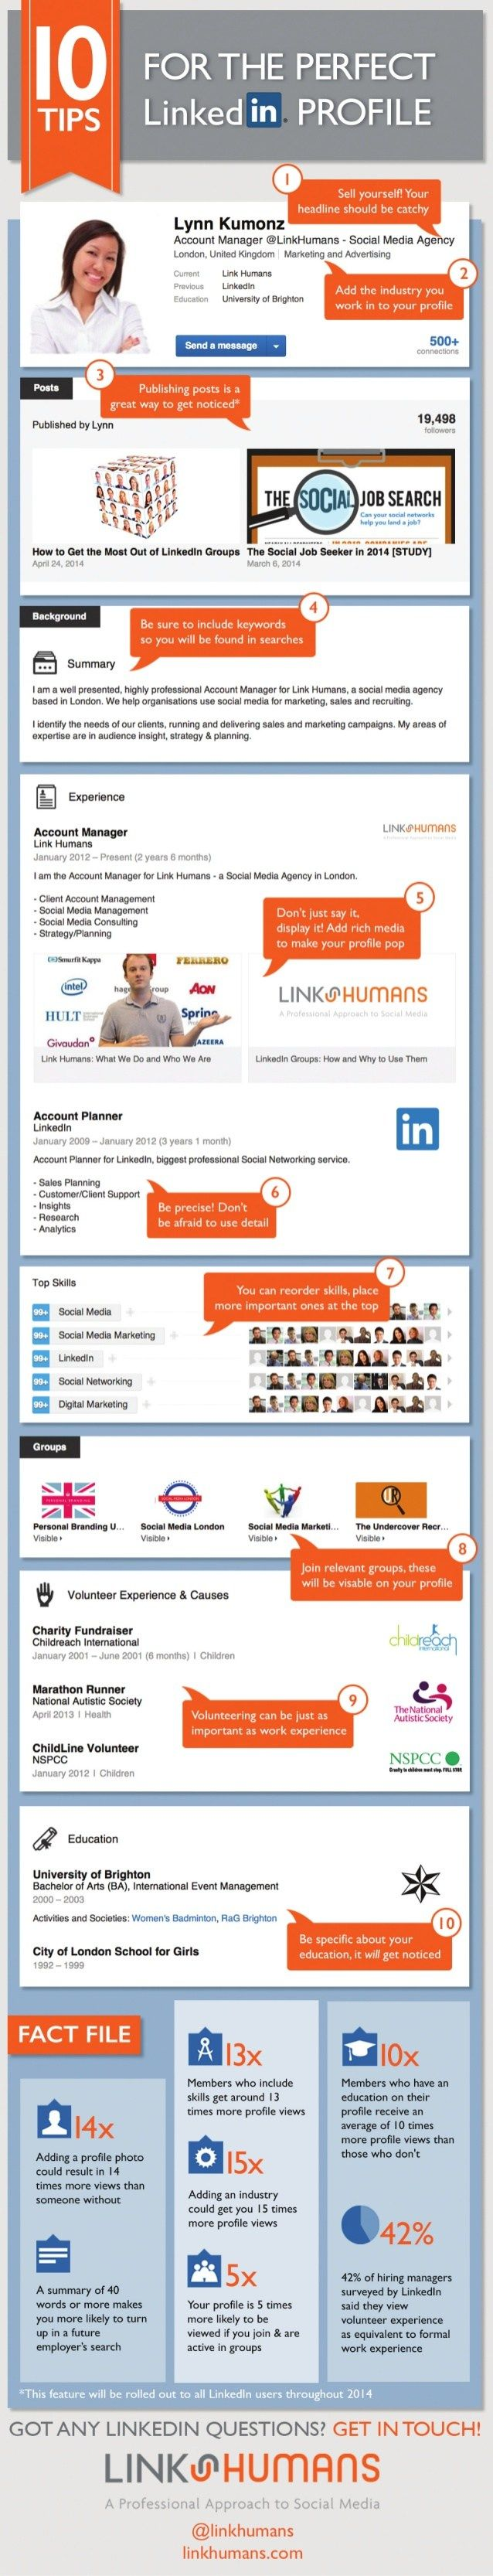 27+ LinkedIn Tips for Effective Small Business Networking